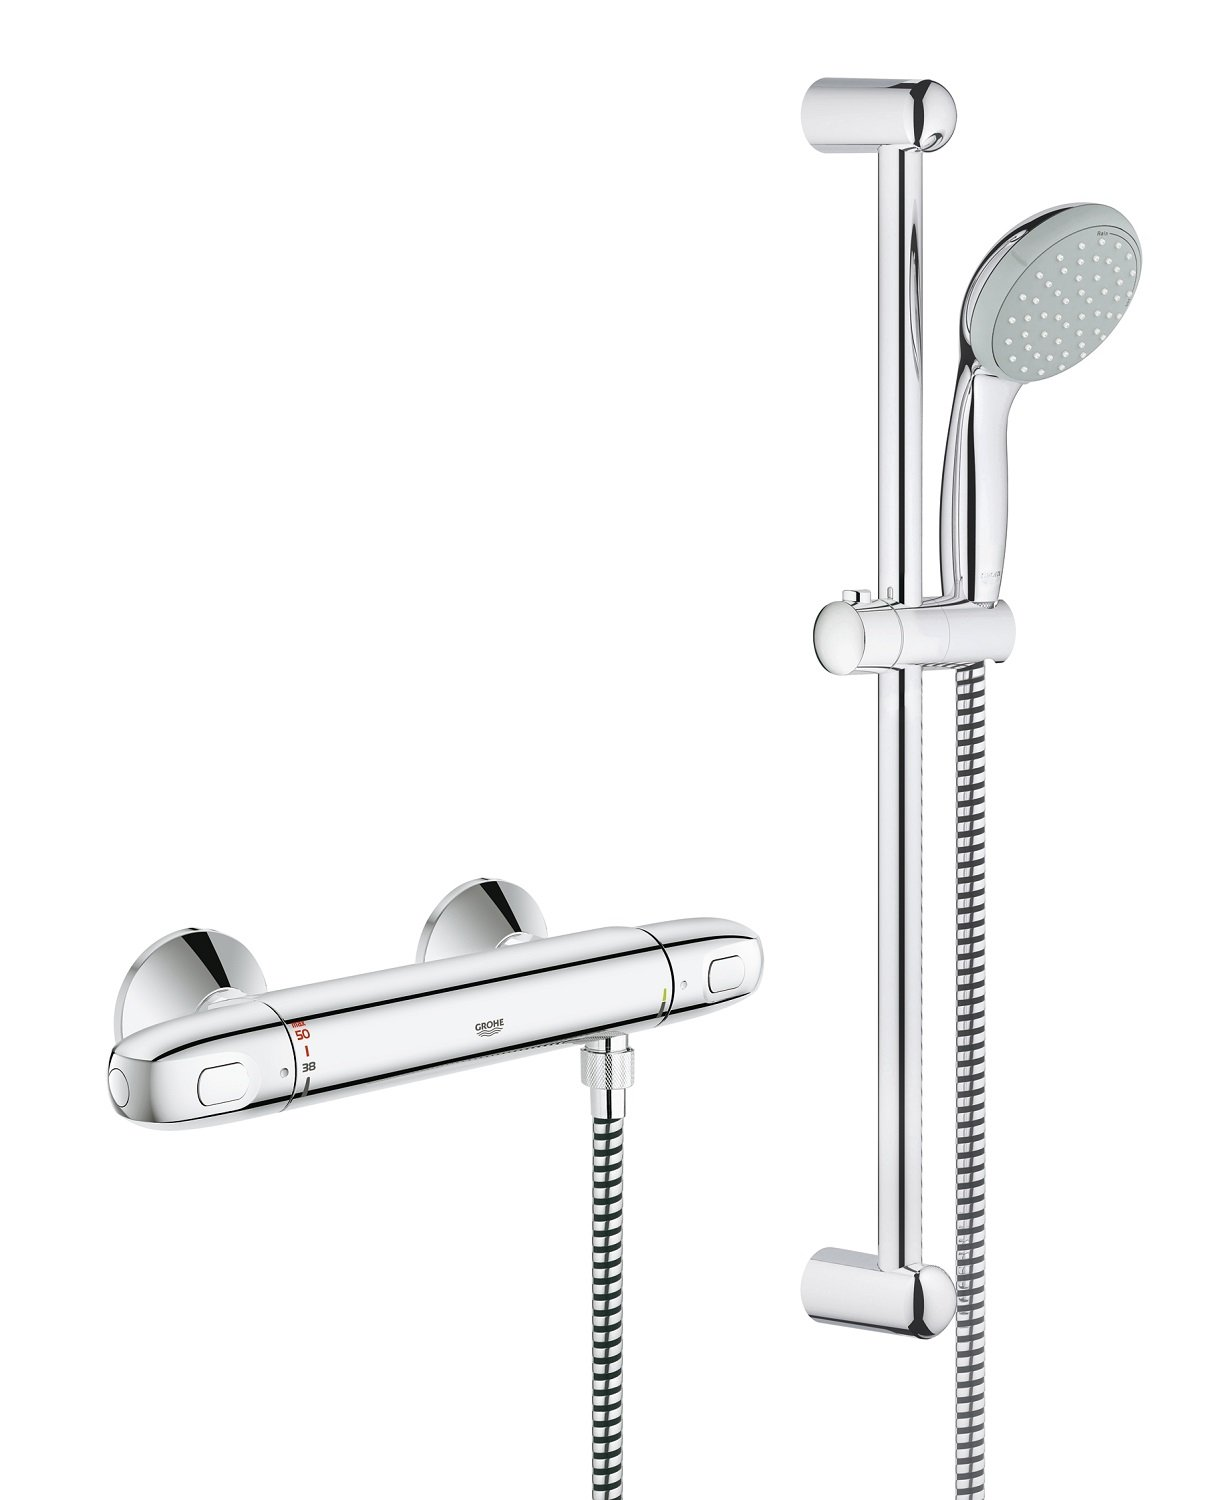 GROHE 34557000 | Grohtherm 1000 Thermostat Shower Set: Amazon.co.uk ...